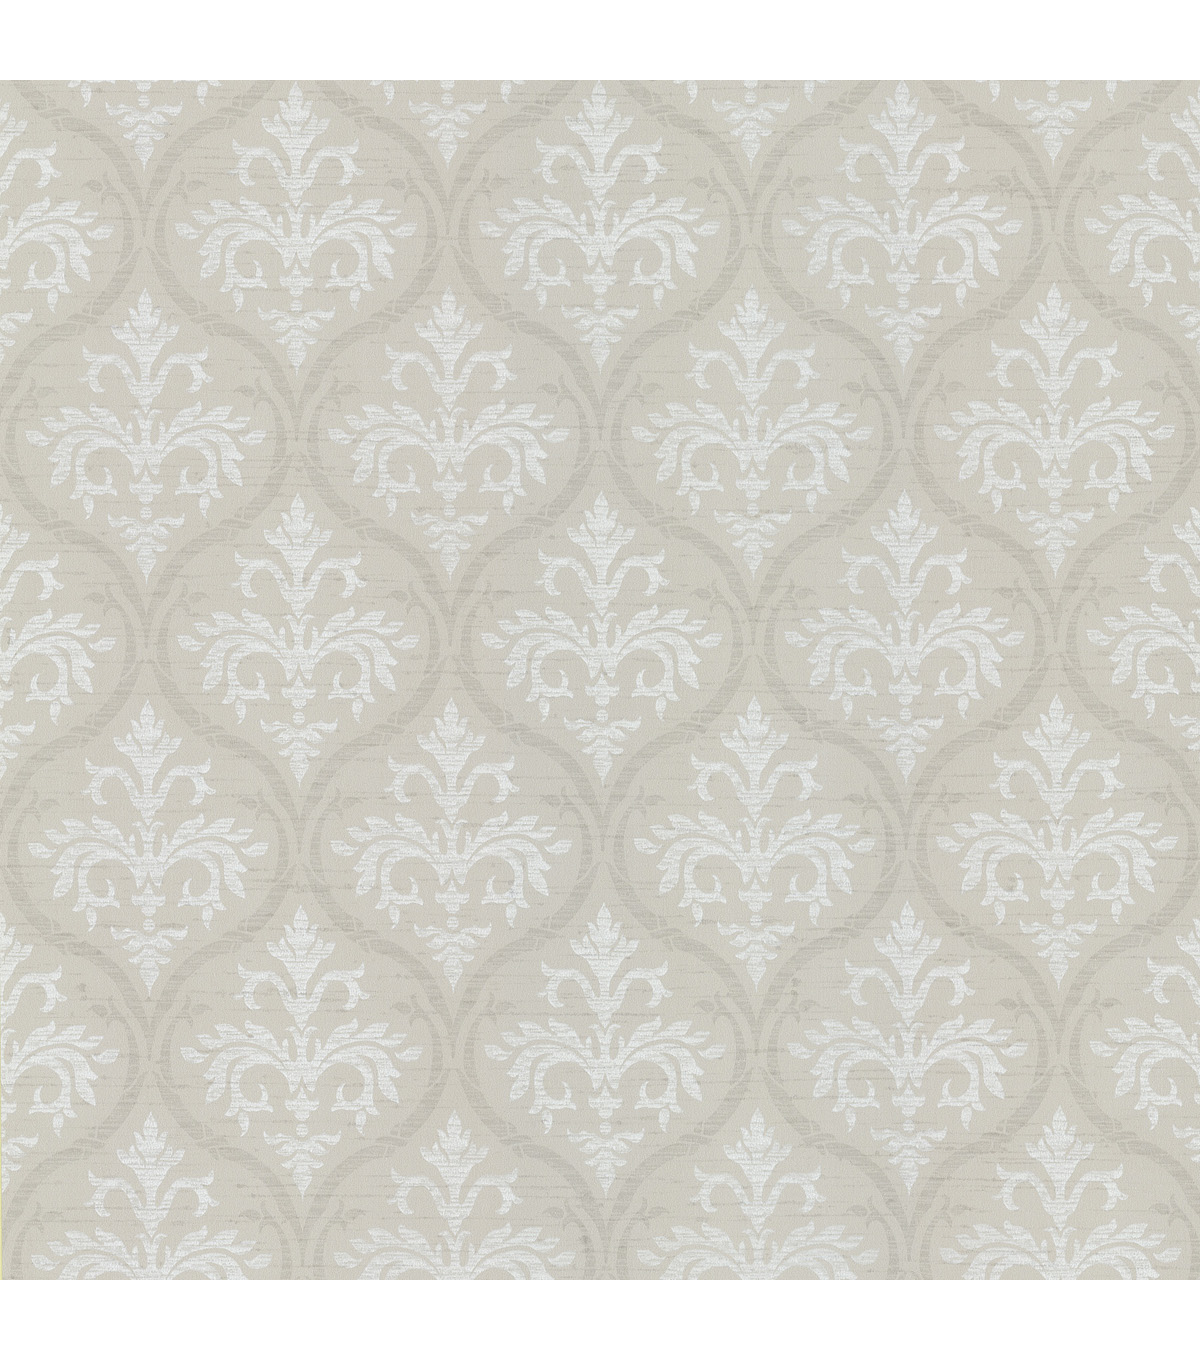 Florence Cream Ogee Damask Wallpaper Sample